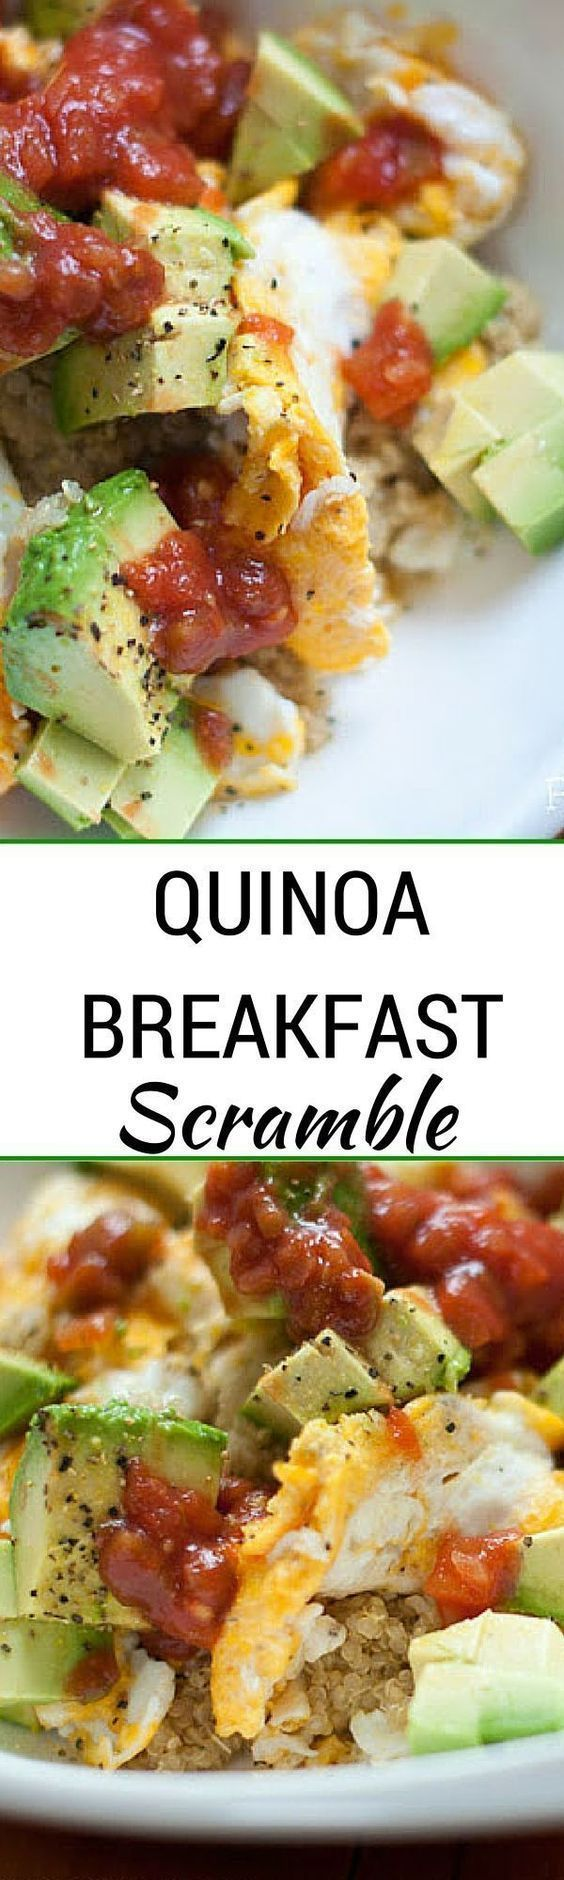 Quinoa Breakfast Scramble  This super easy breakfast recipe is the perfect way to jump start your day! With quinoa eggs avocado and salsa your taste buds will thank you.